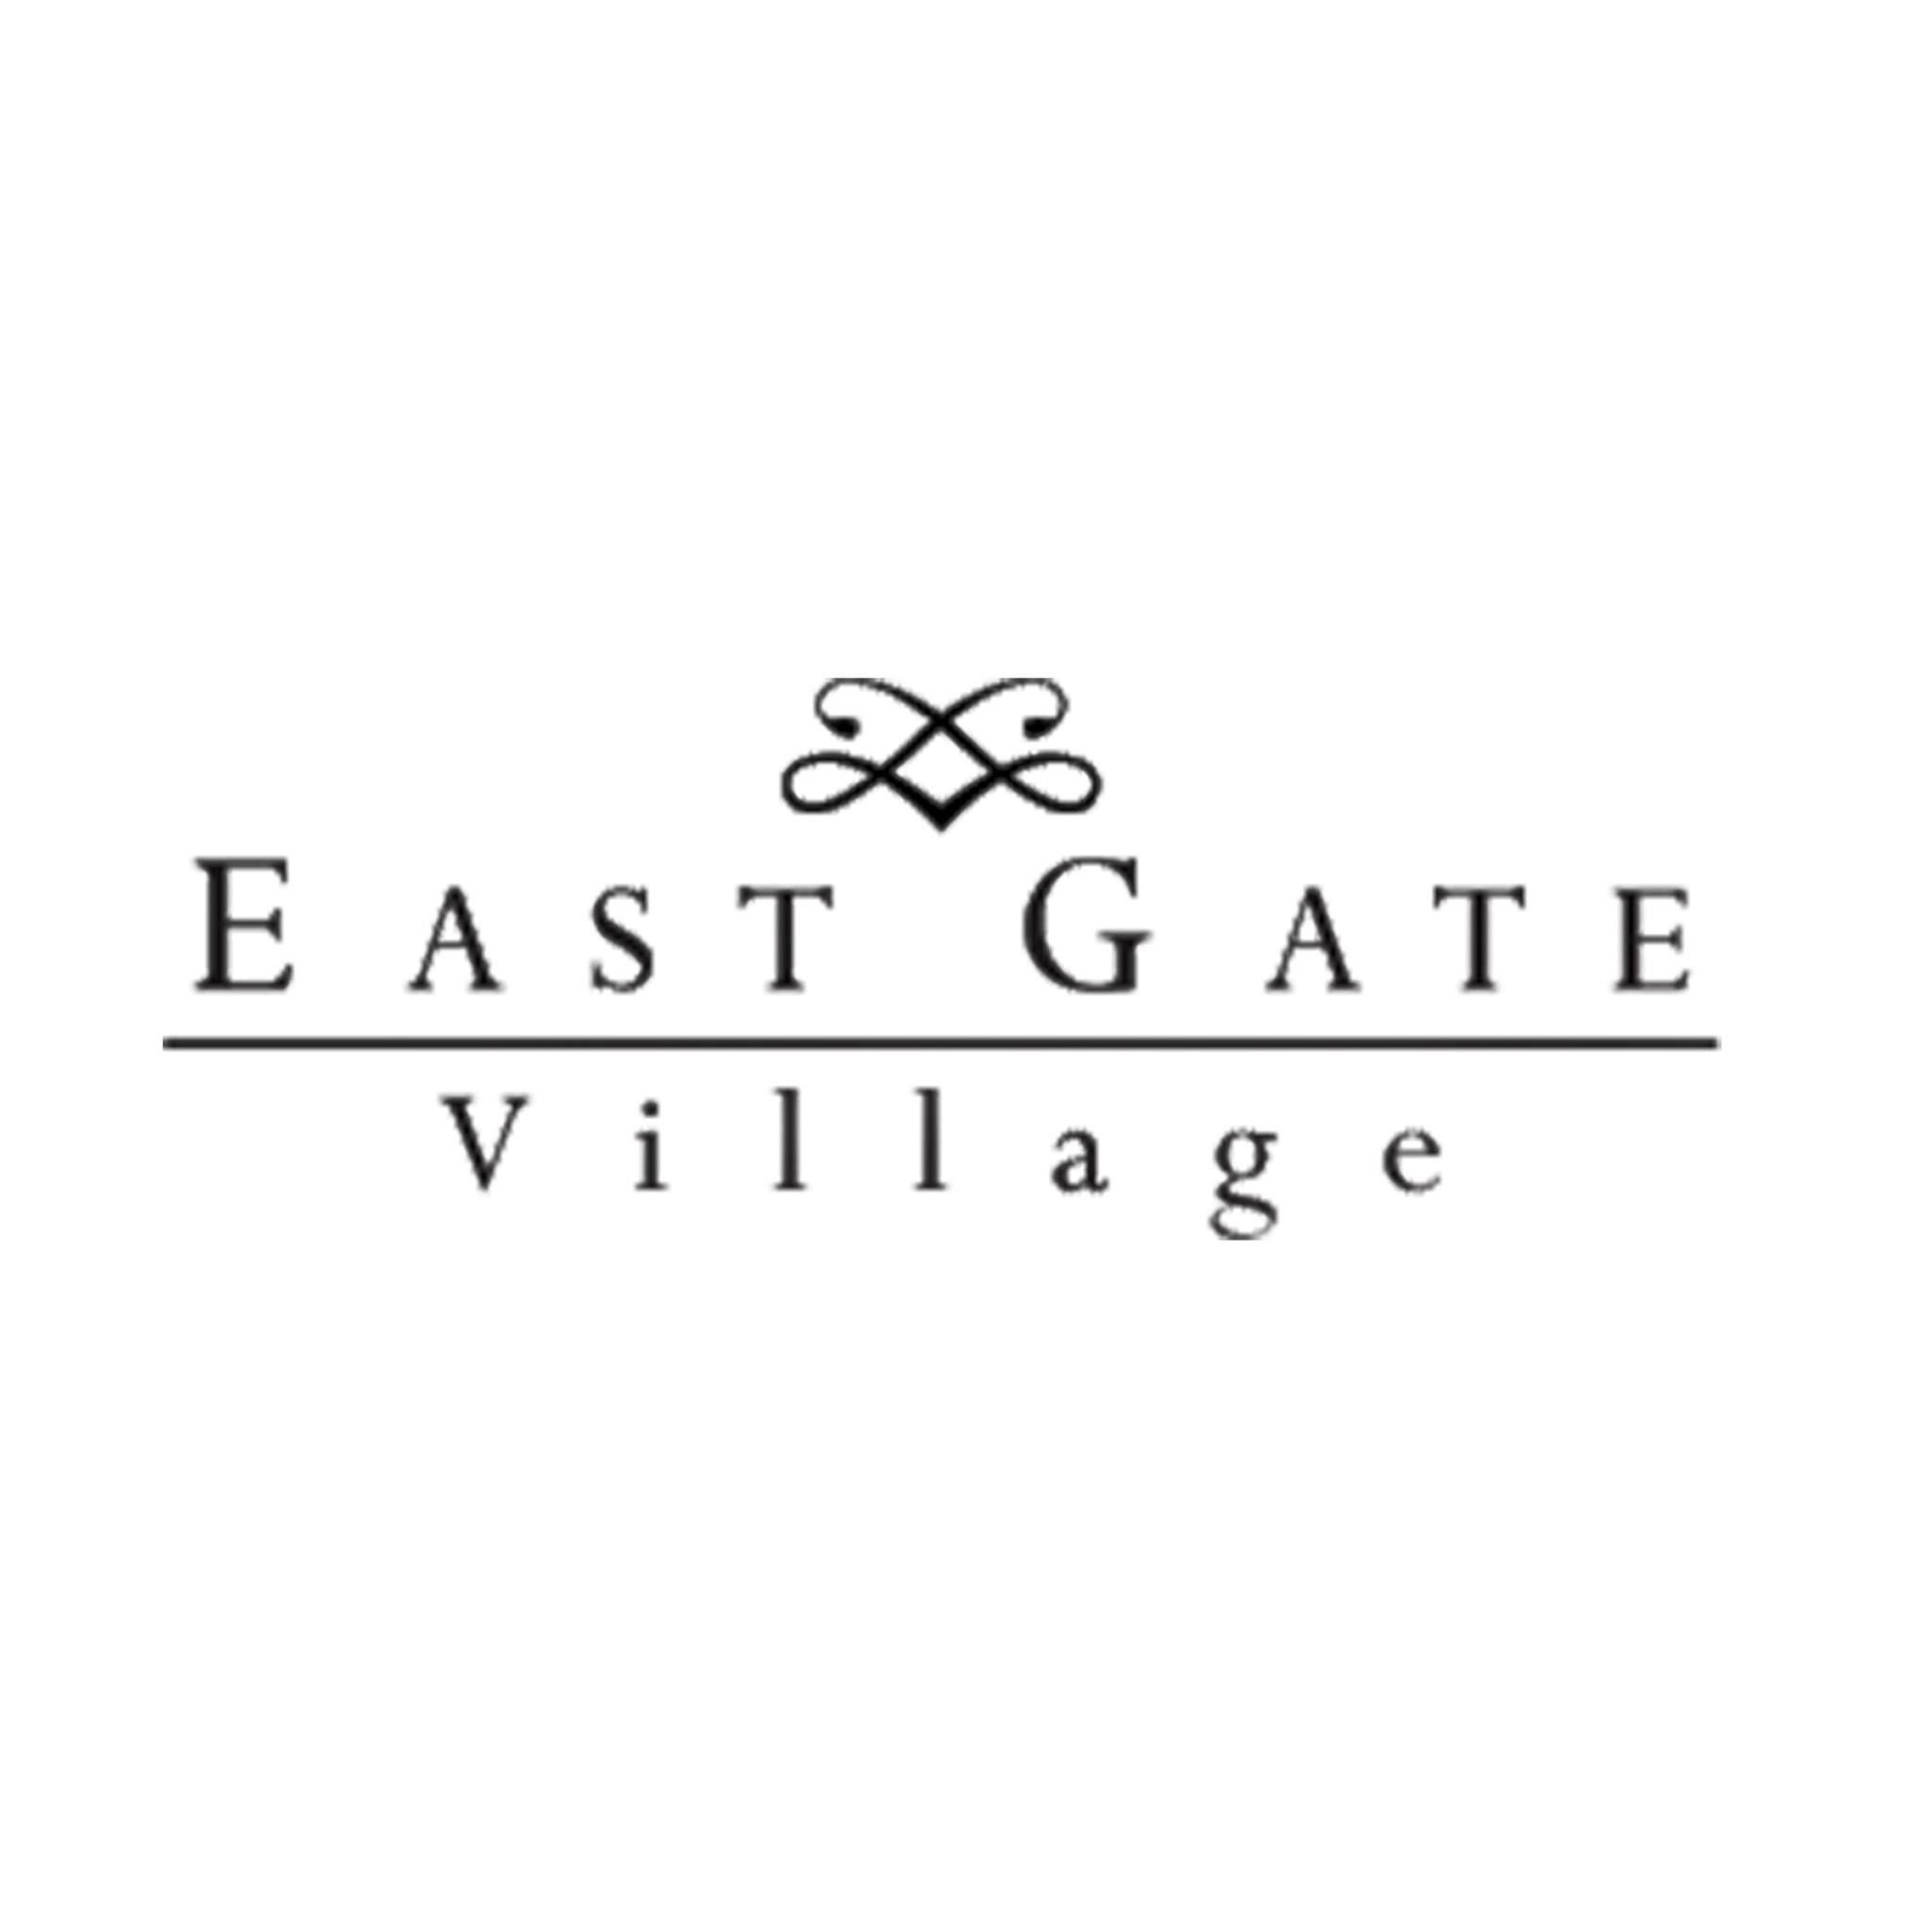 East Gate Apartments: East Gate Village Apartments